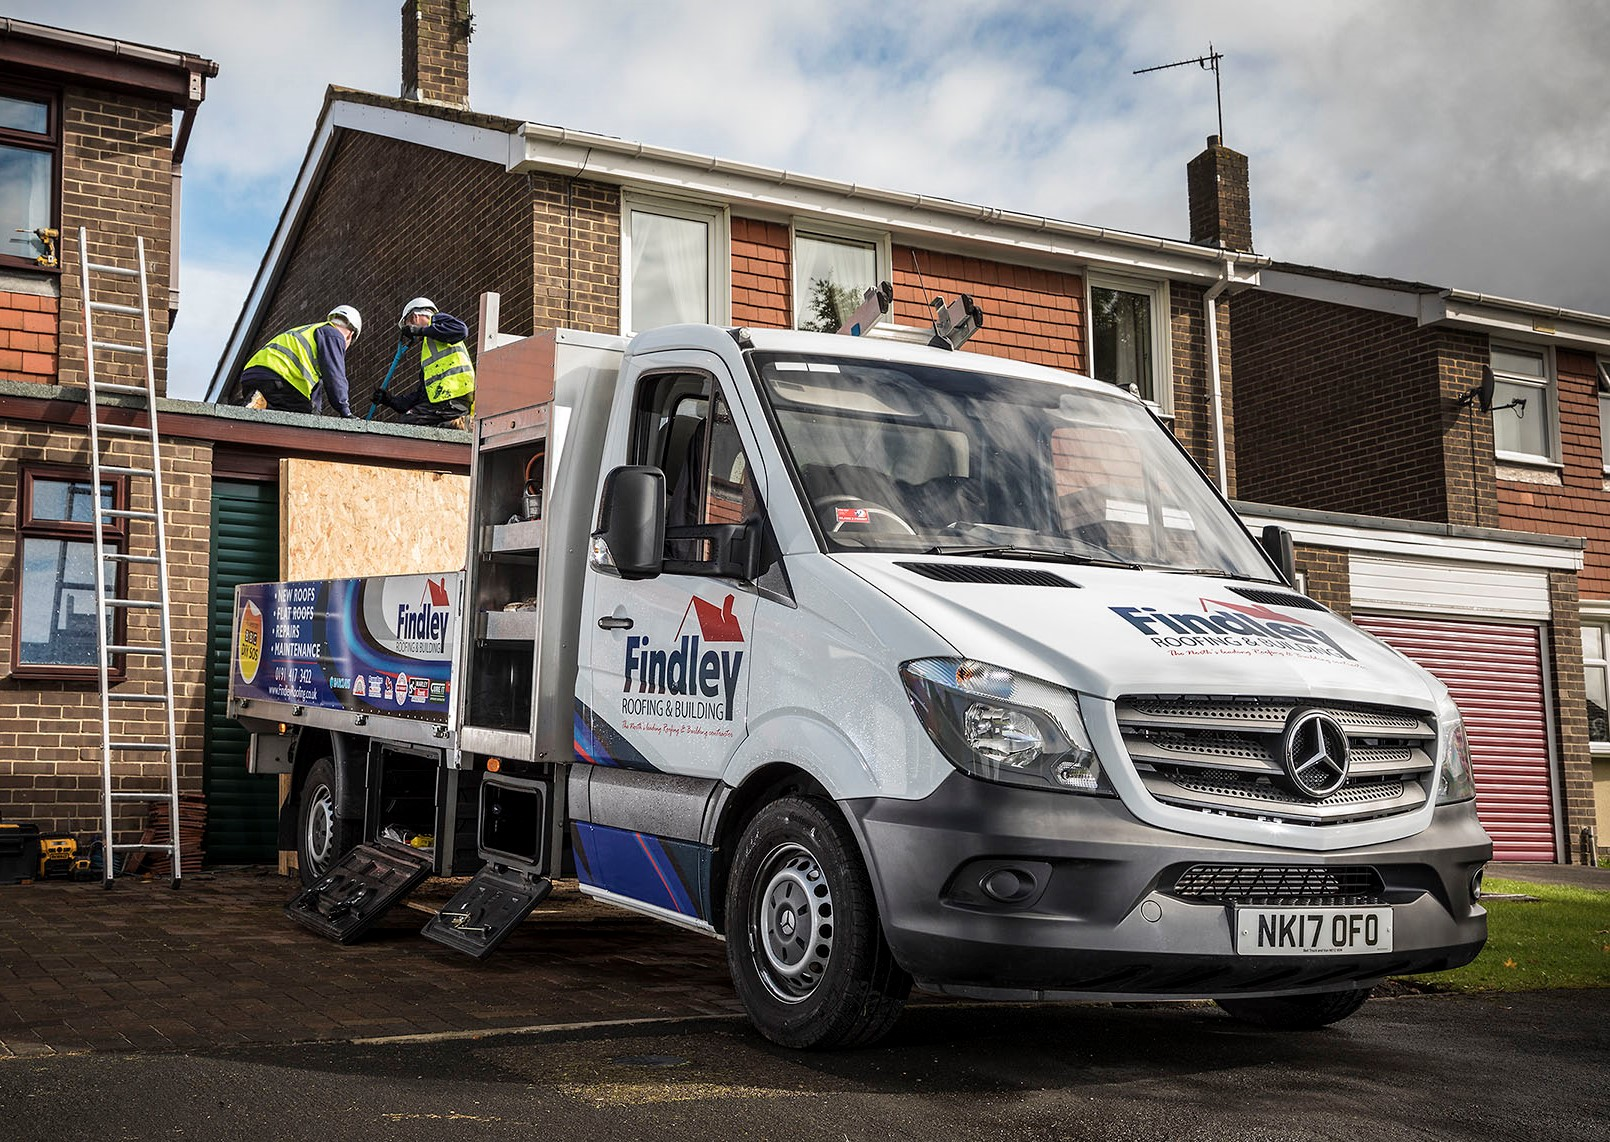 One of the new Findley Roofing vans